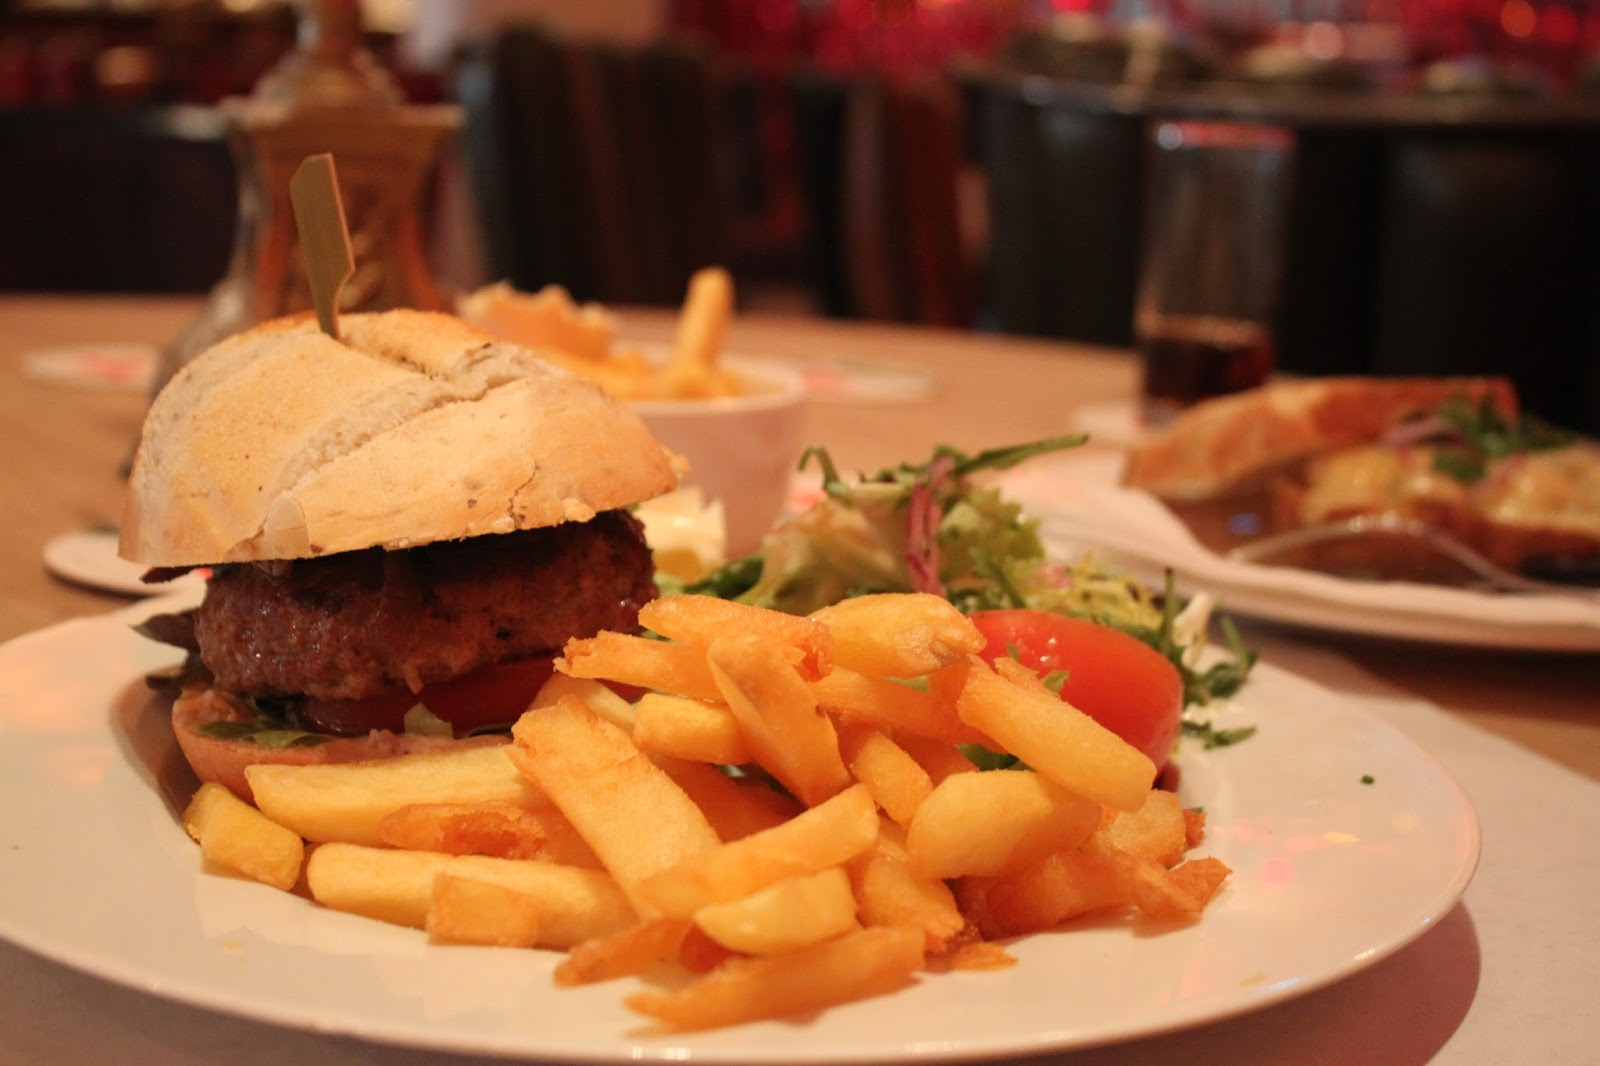 The burger and chips served at Cafe Schium, Amsterdam,